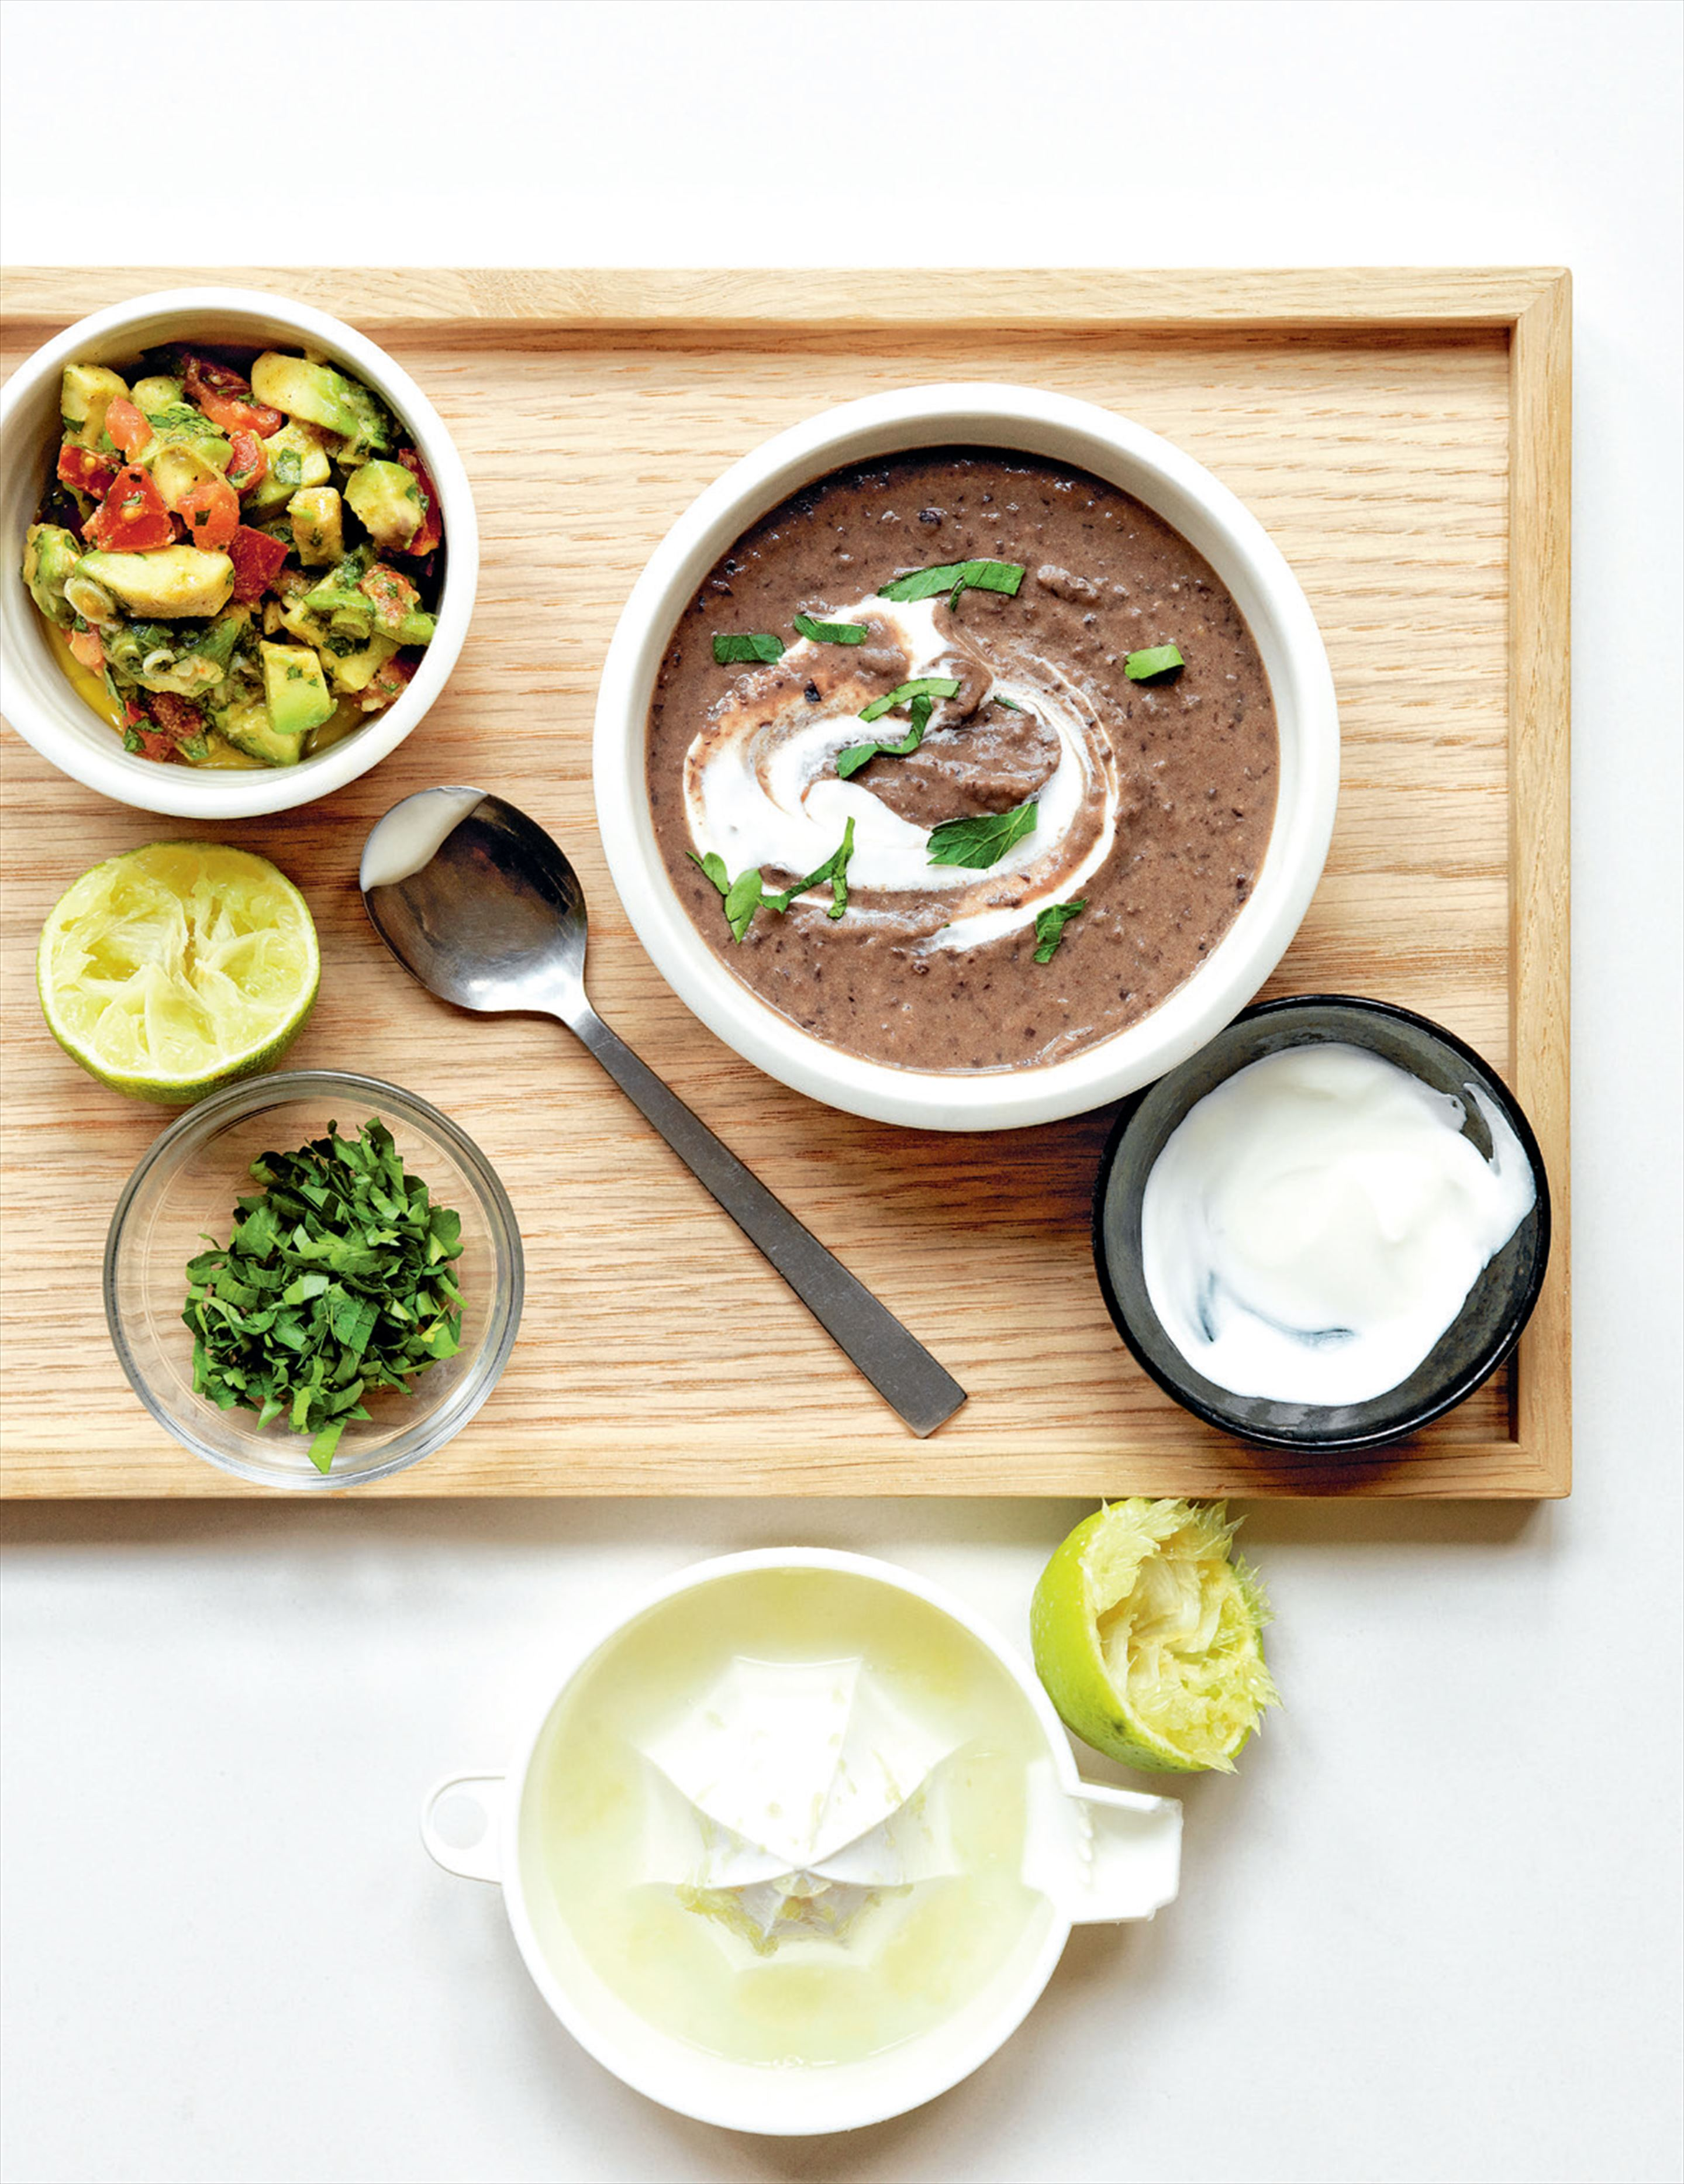 Black bean soup with avocado salsa